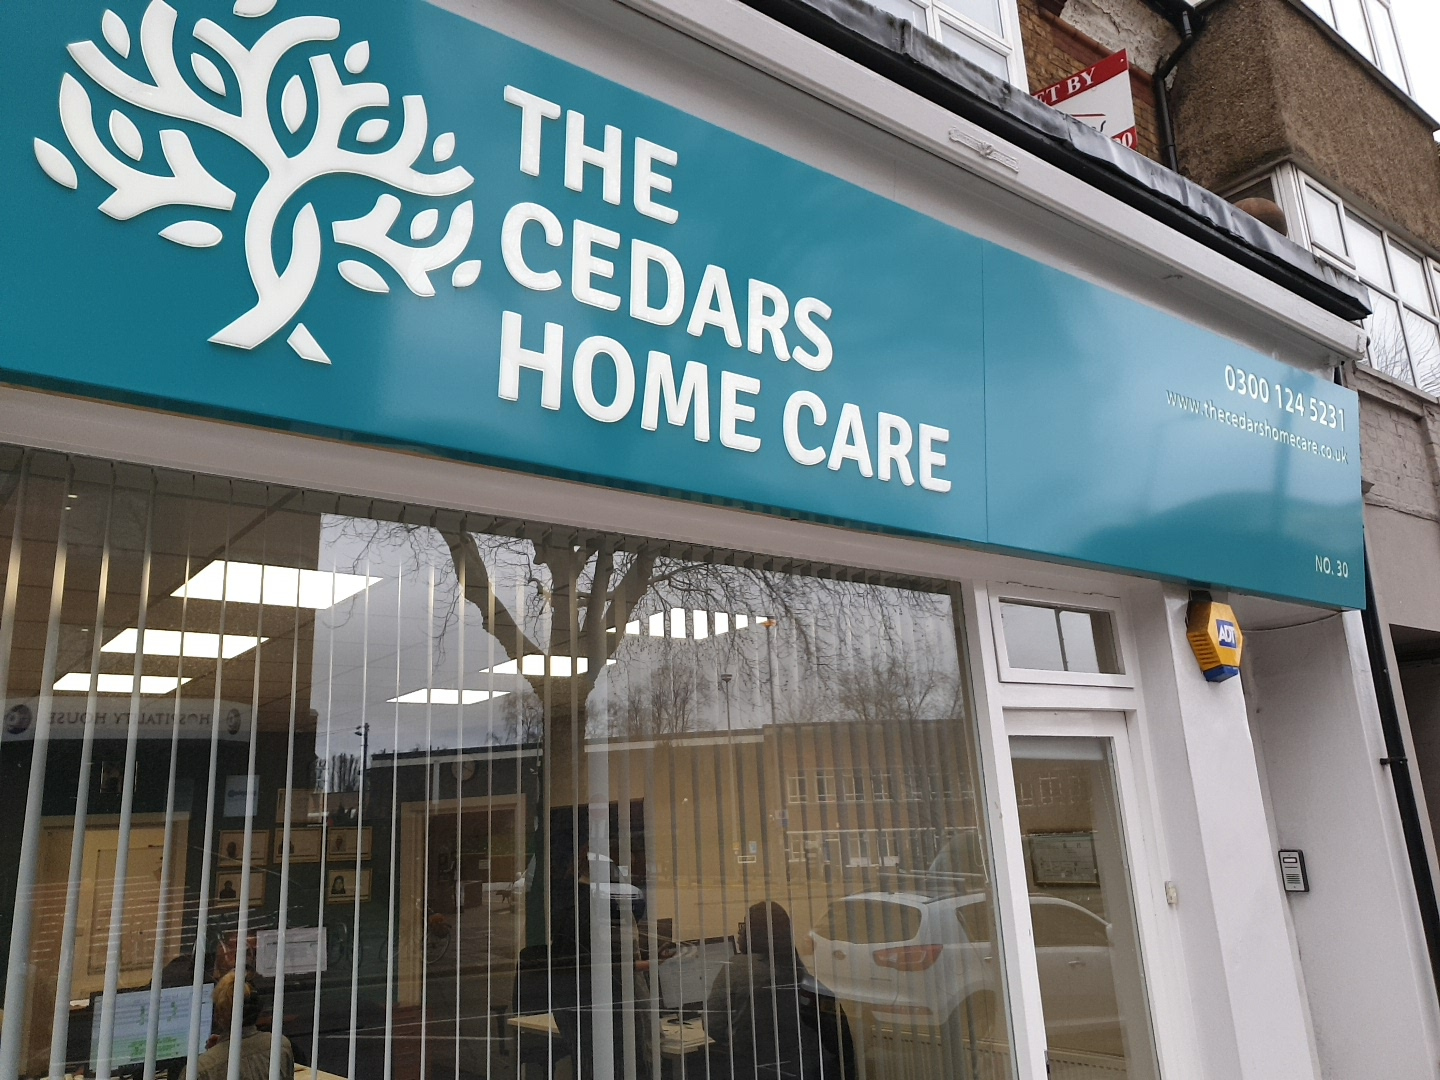 Outside of The Cedars Home Care